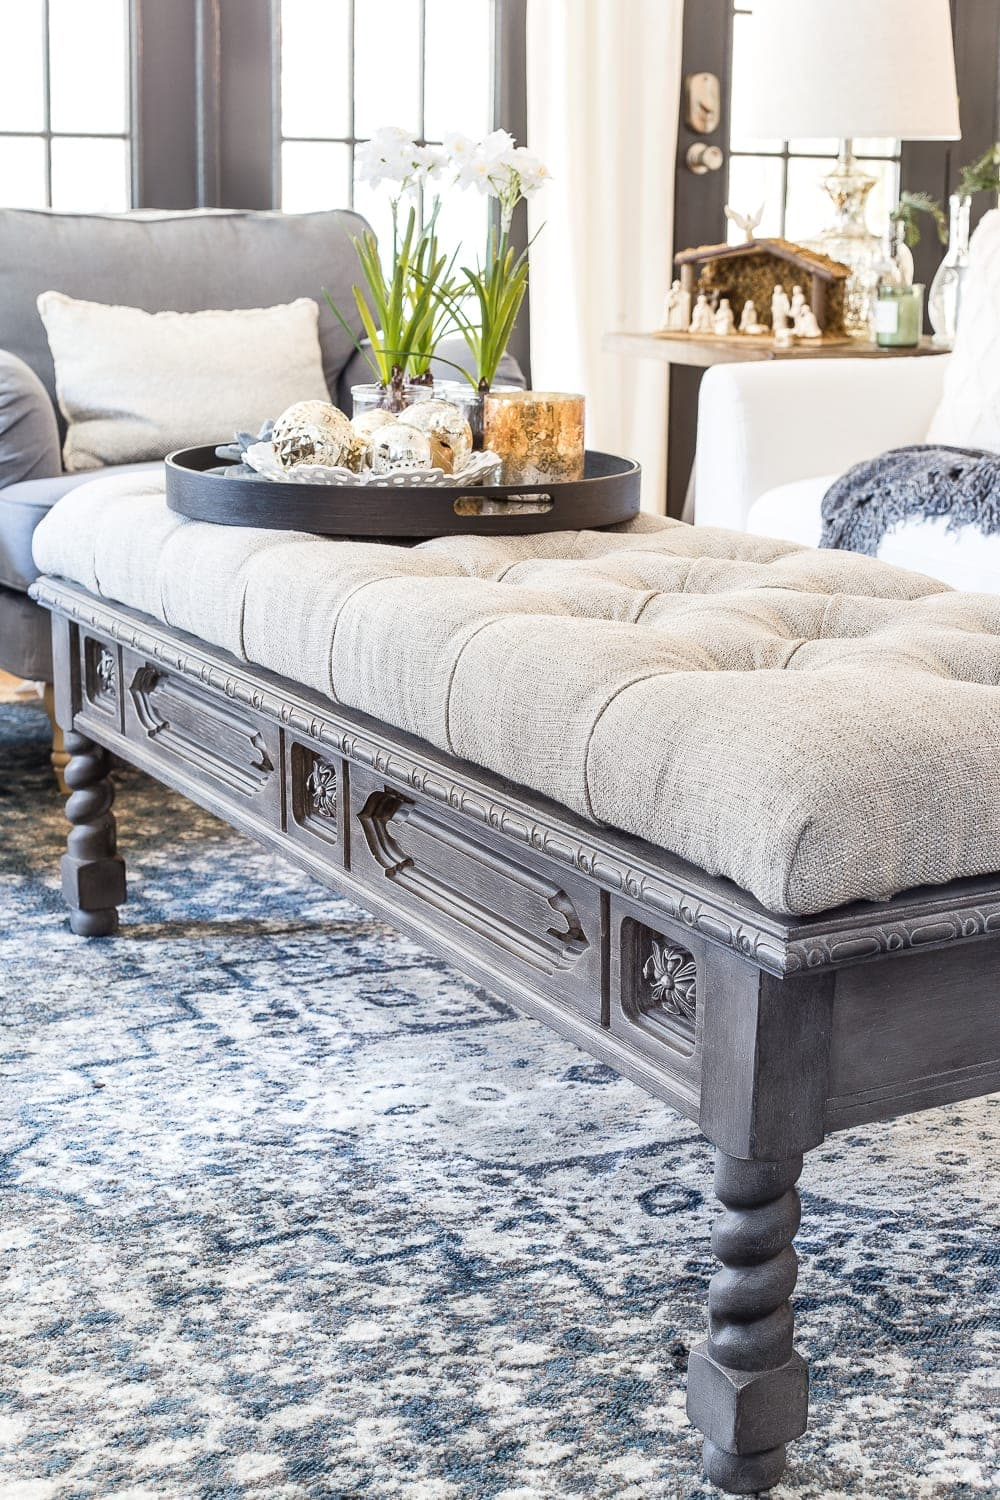 DIY Ottoman Bench from a Repurposed Coffee Table Blesser House